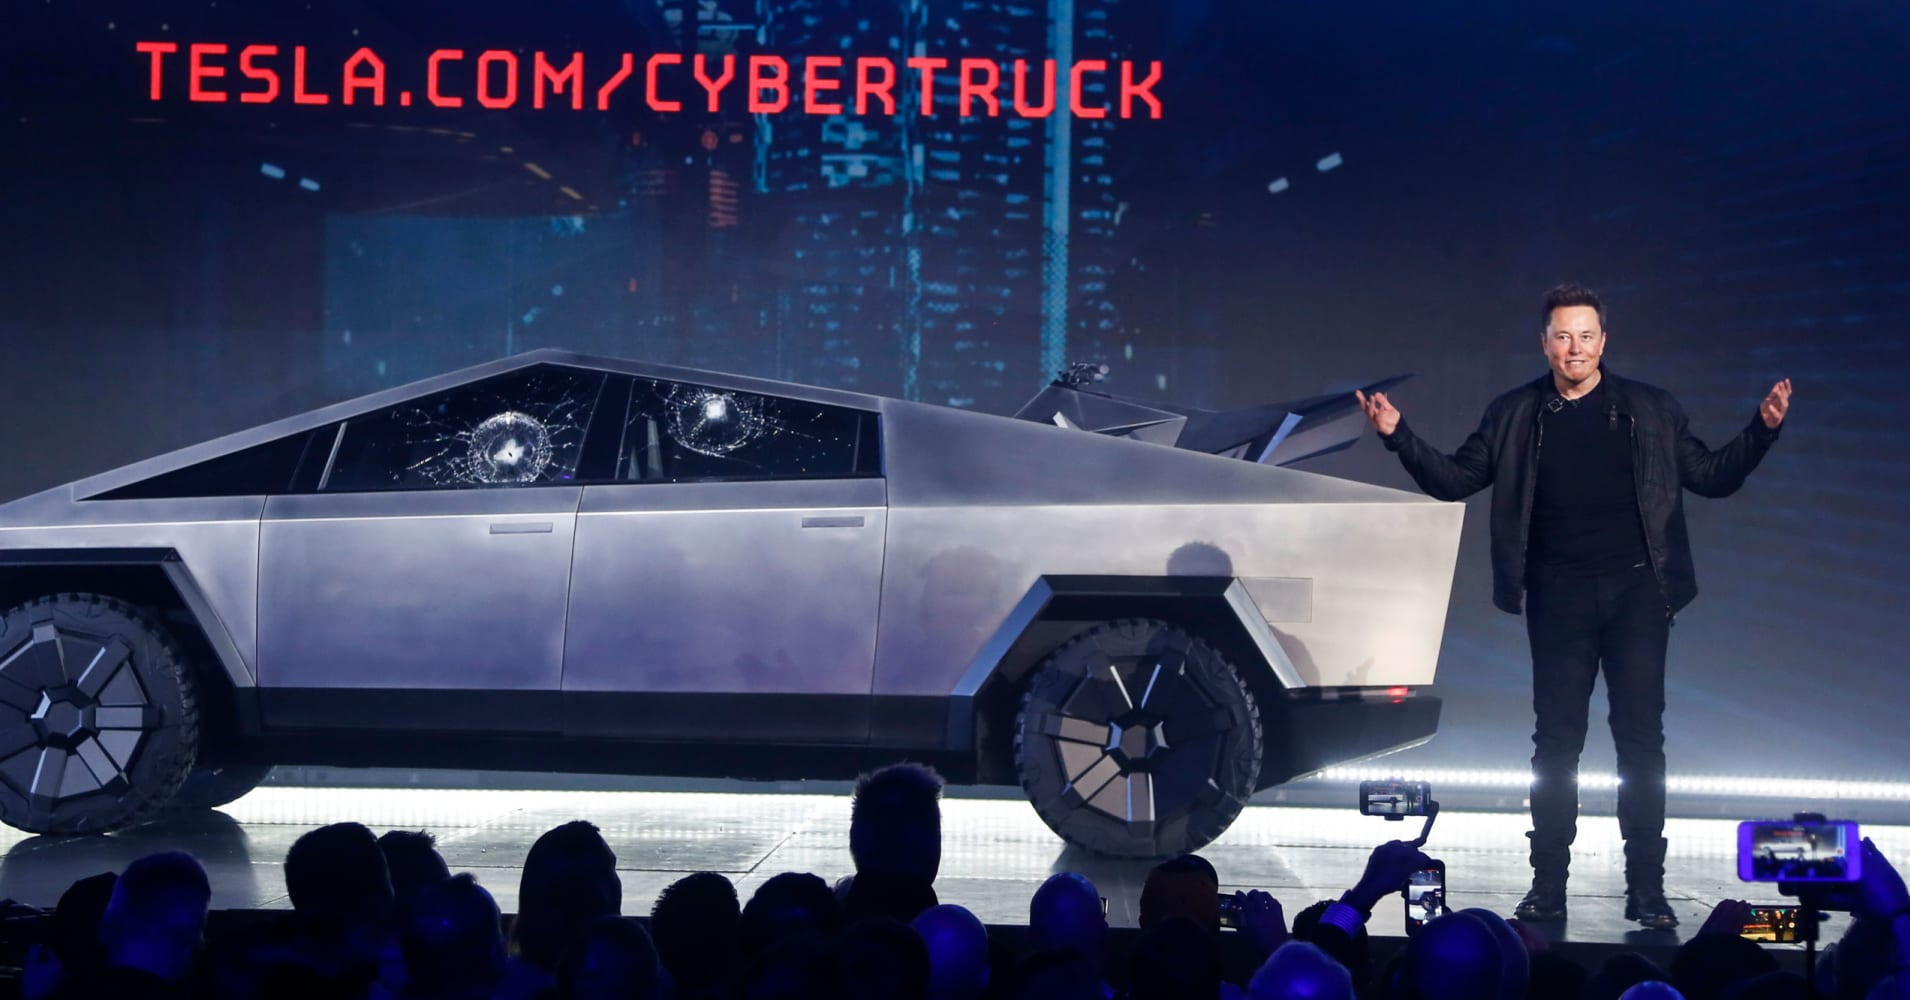 Elon Musk says Tesla has received 200,000 orders for its Cybertruck despite botched debut